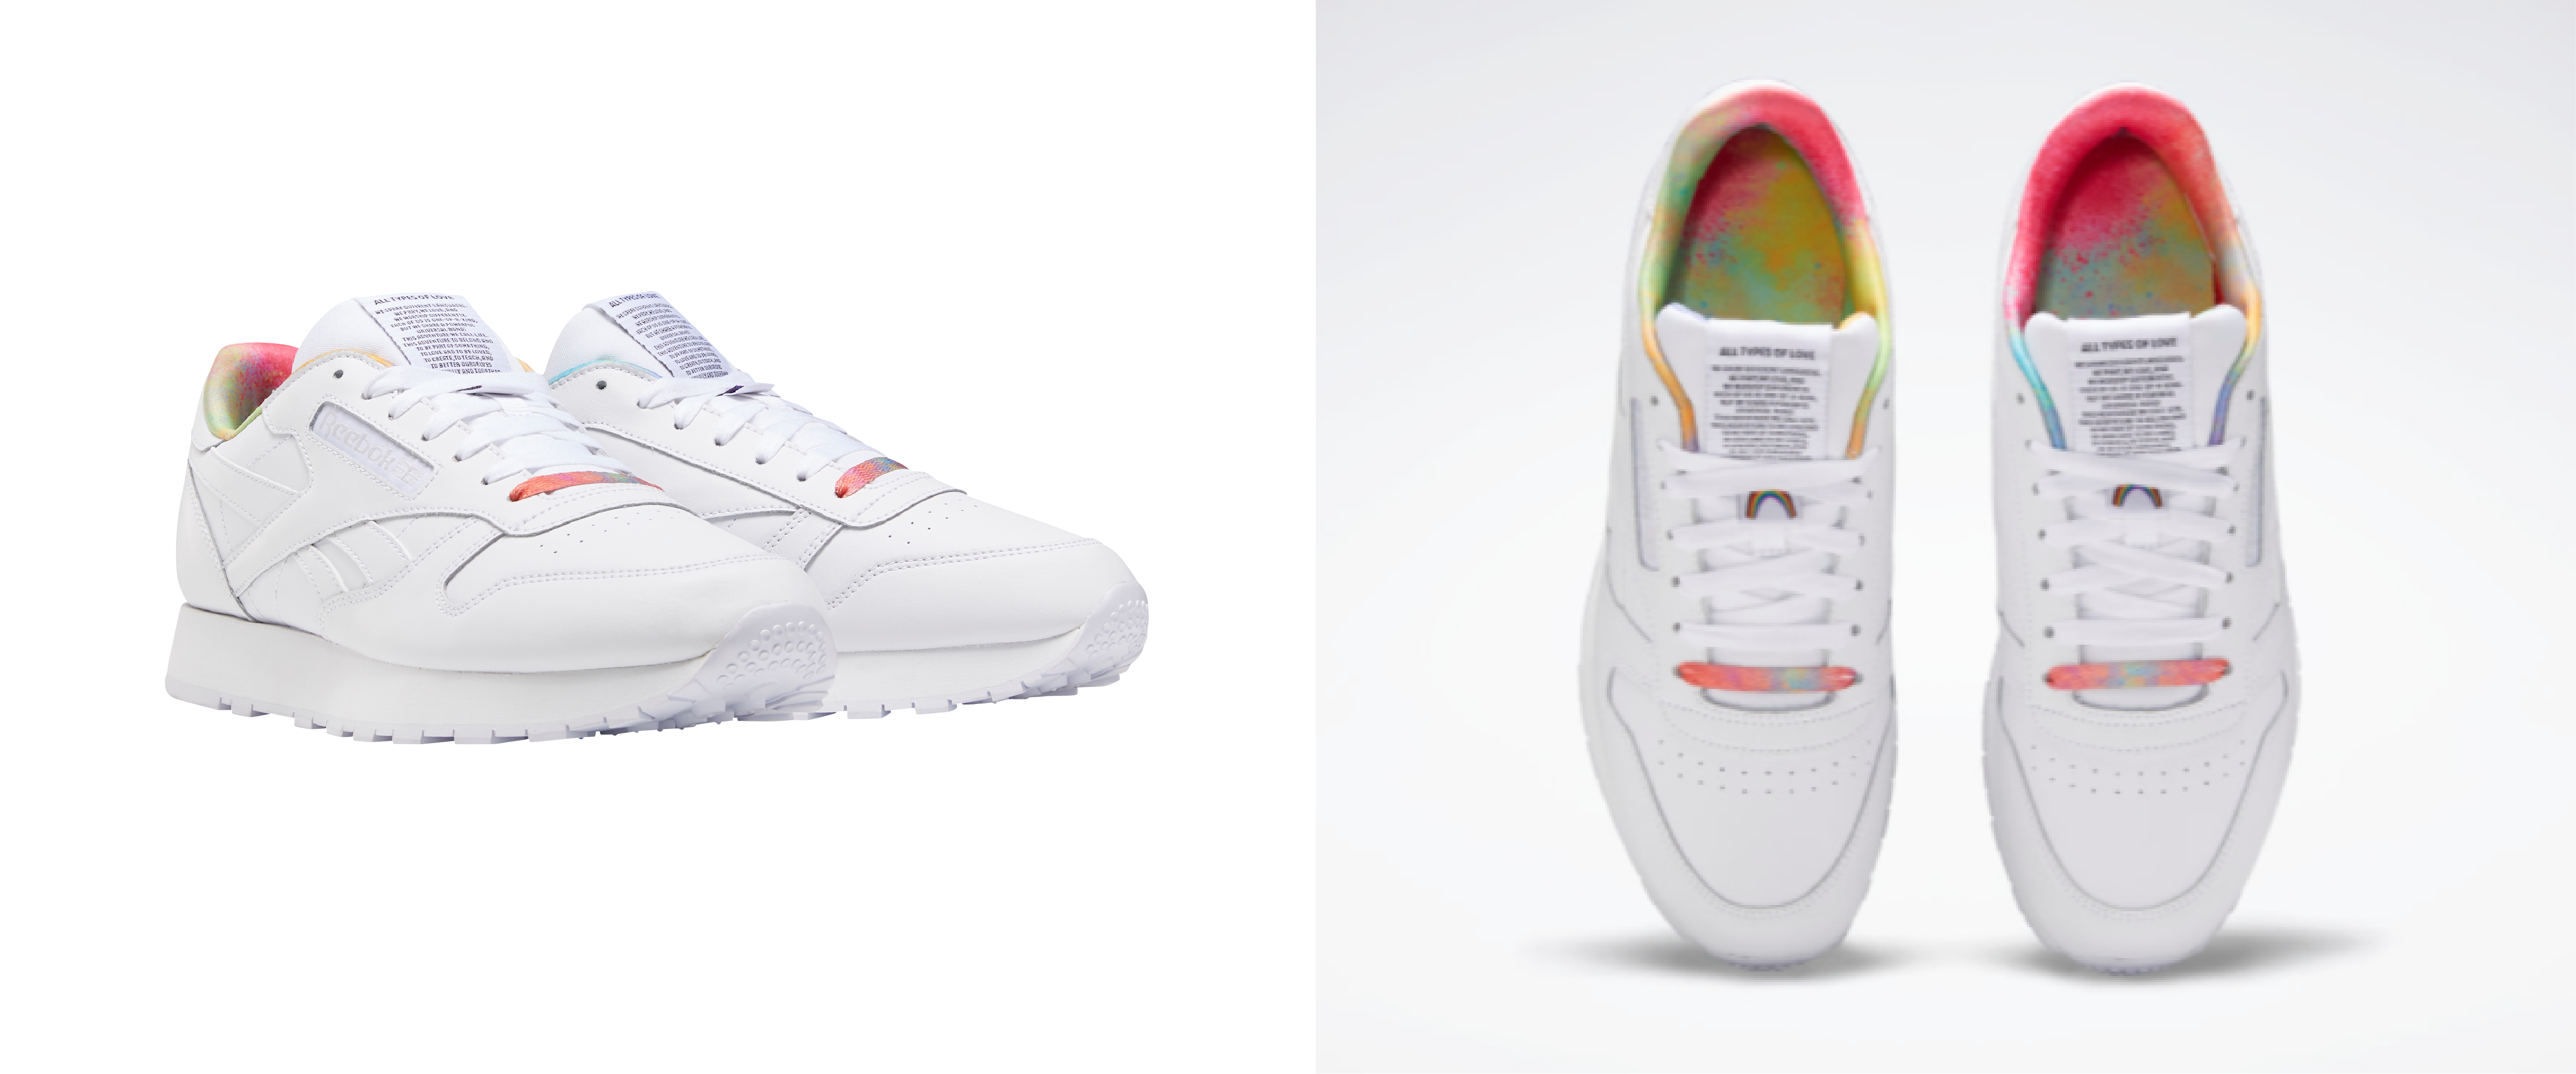 A side-by-side photo, different angles, of Reebok's Pride-Inspired classic leather Pride shoes.